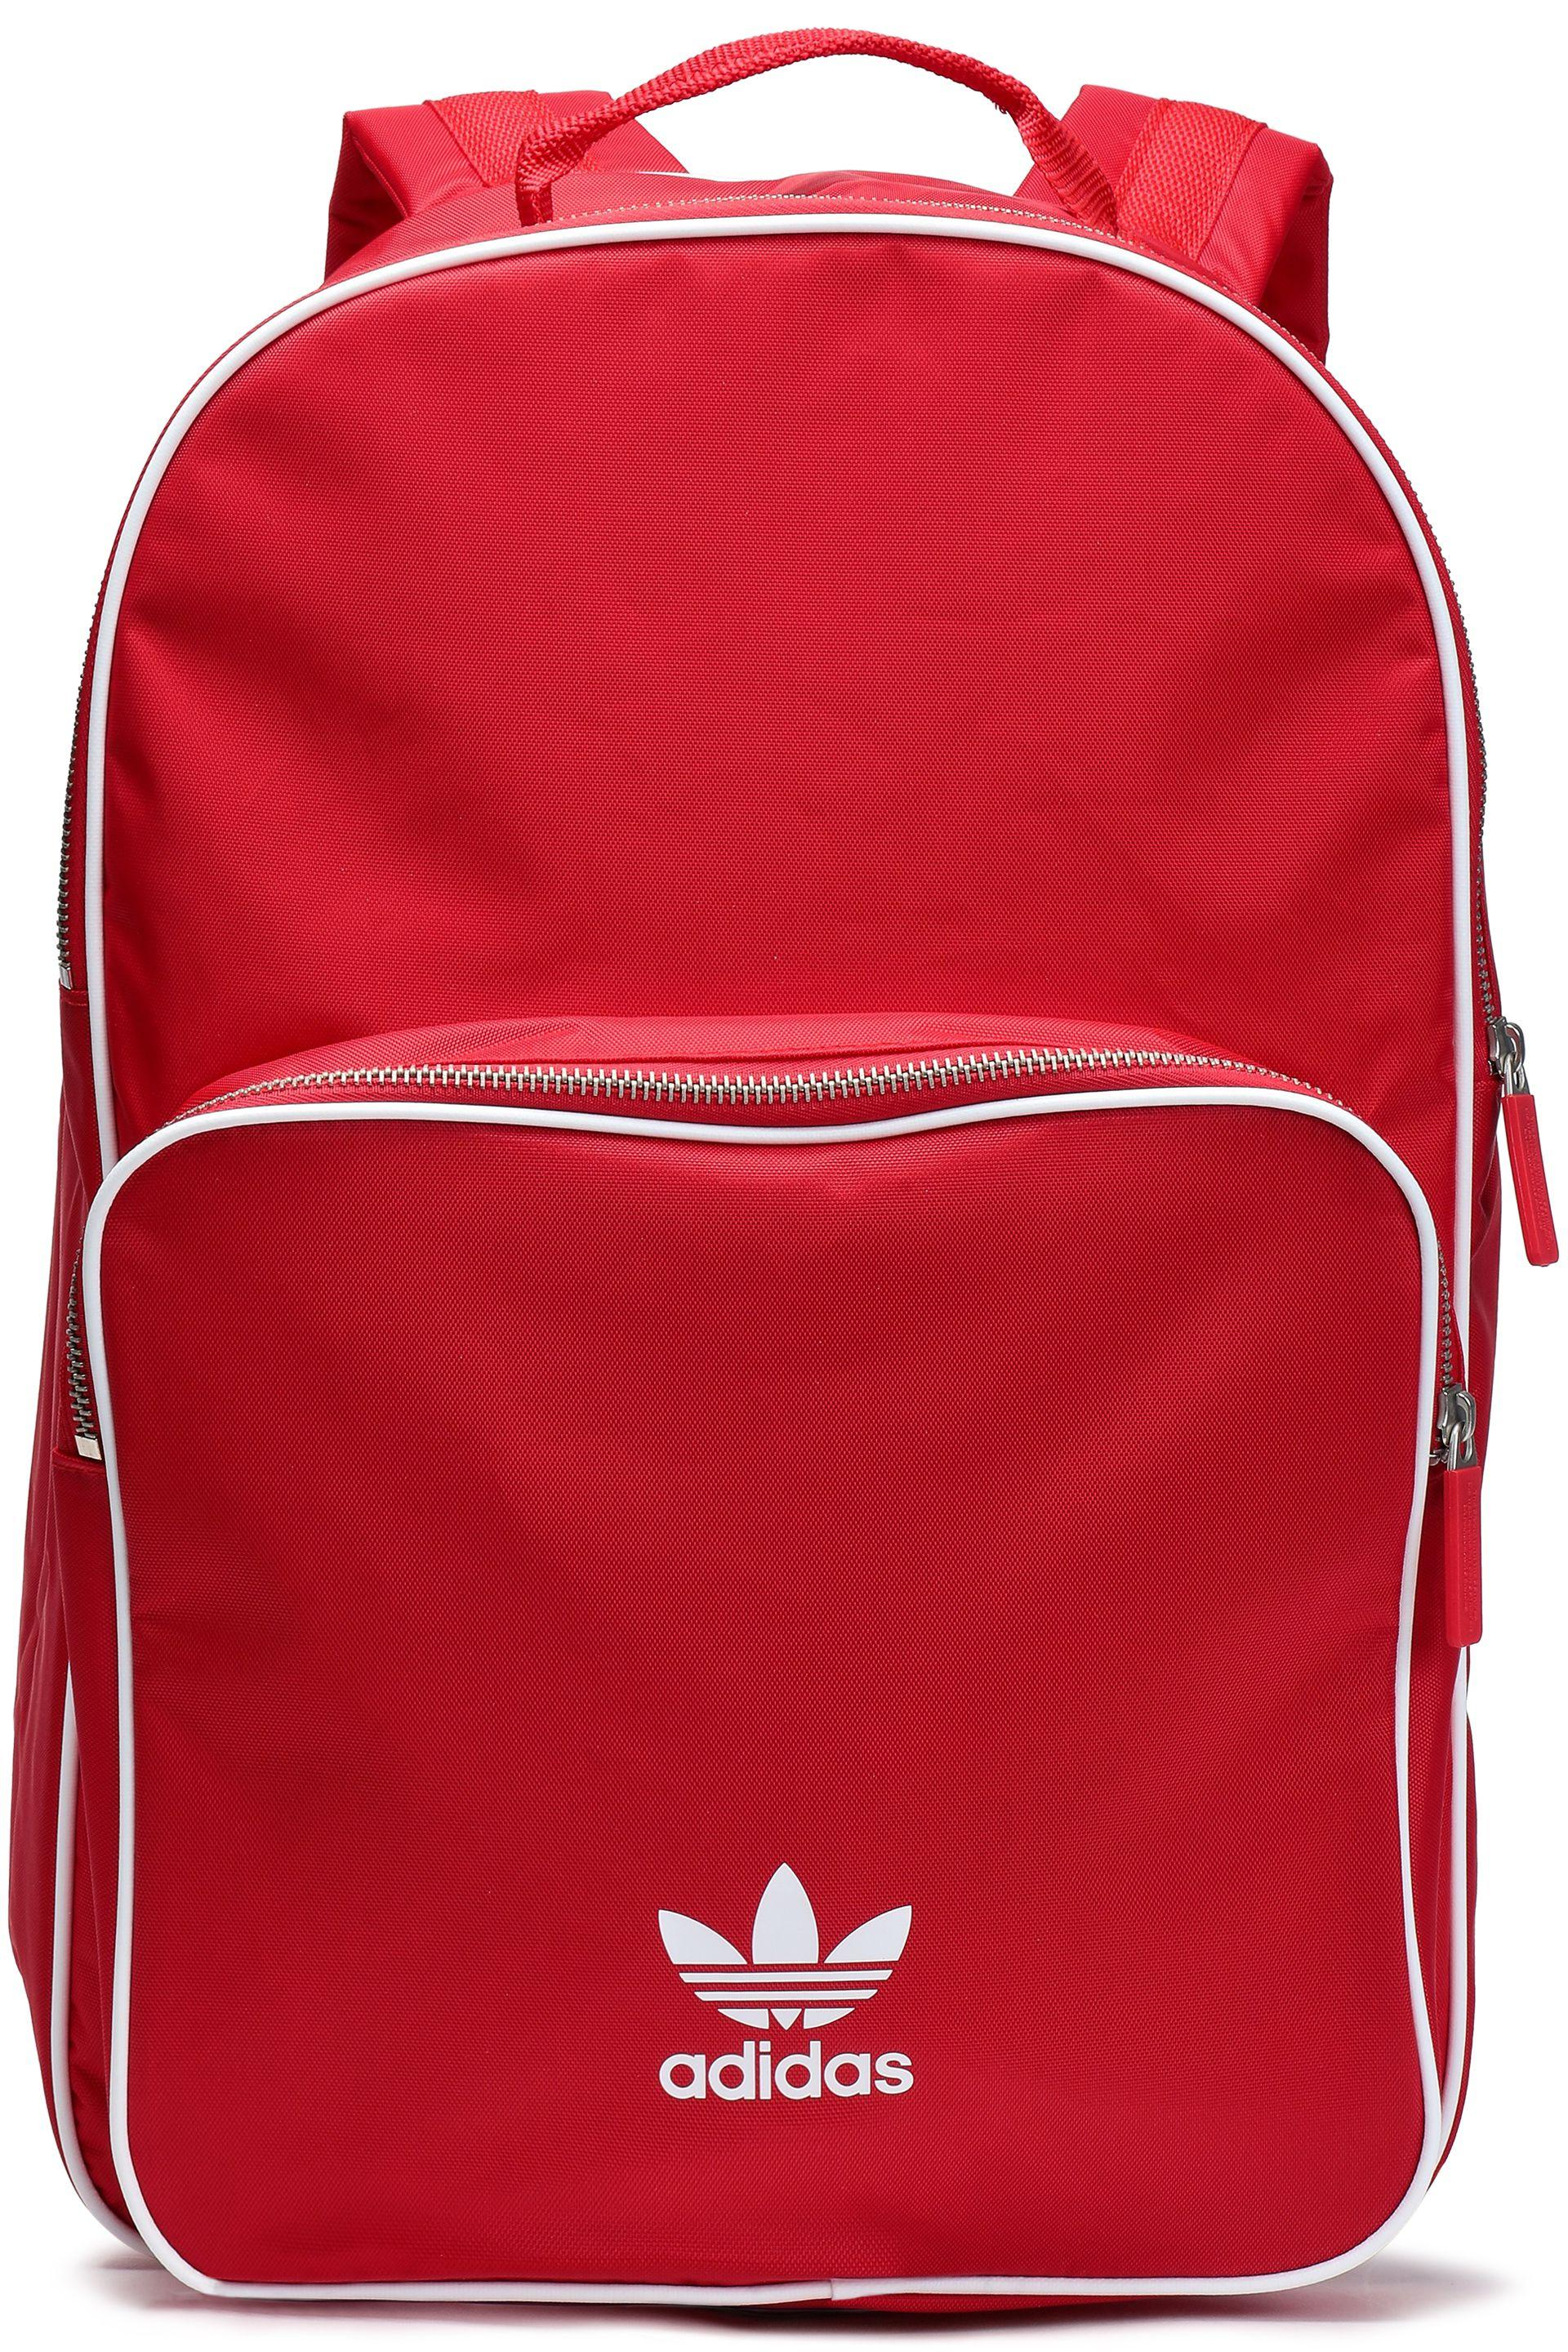 adidas Originals Woman Woven Backpack Red in Red - Lyst 4927a200c6